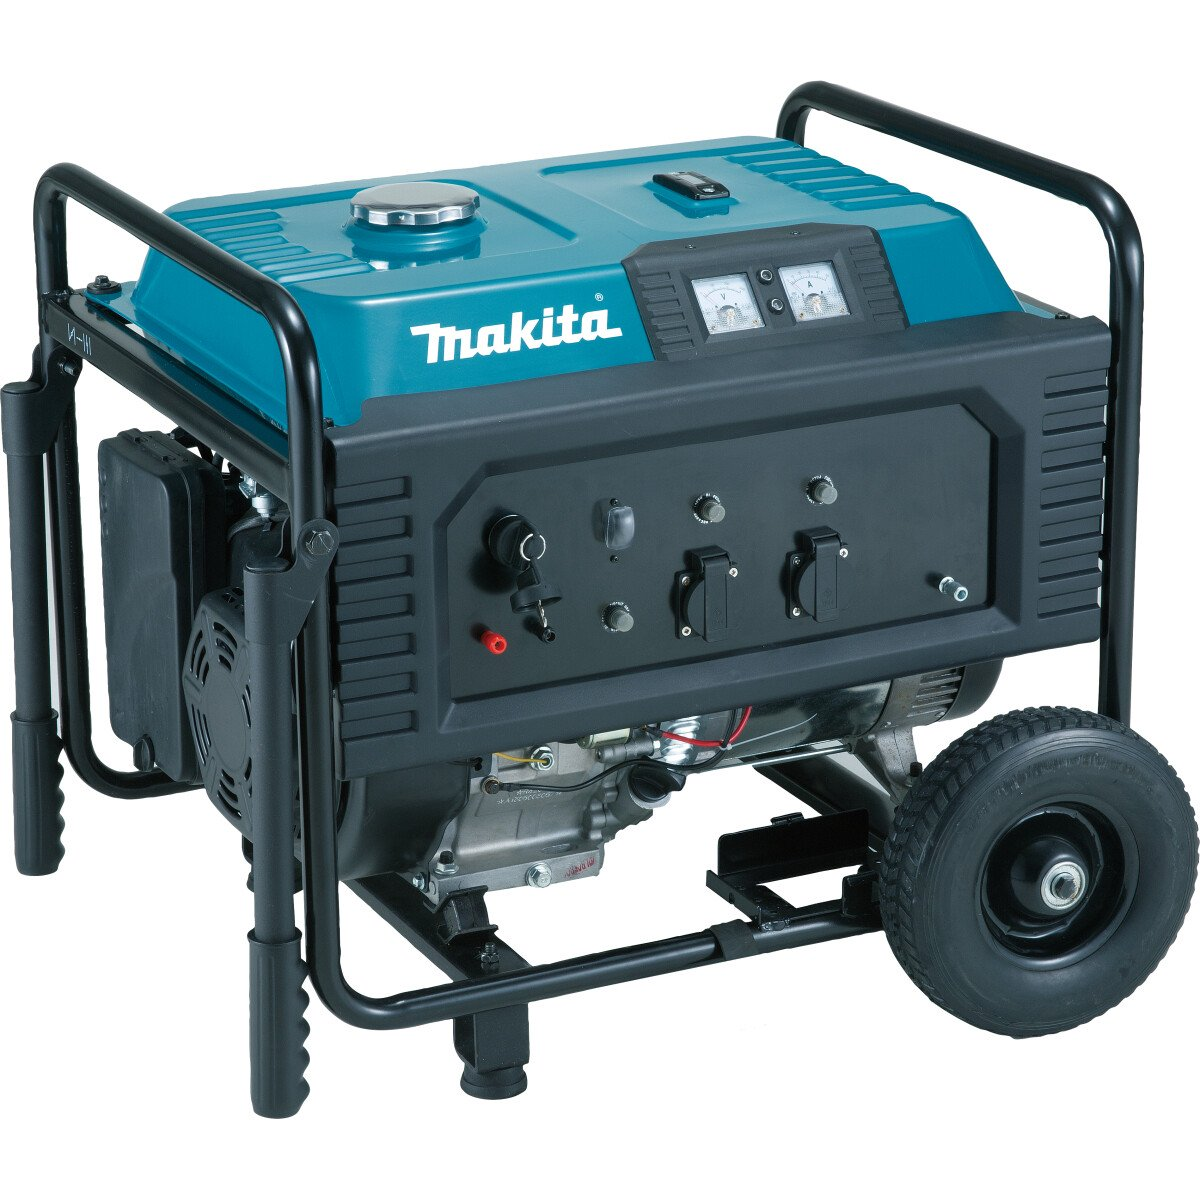 Makita EG4550A 4.5kw 4 Stroke Petrol Generator 25ltr with Accessory Set